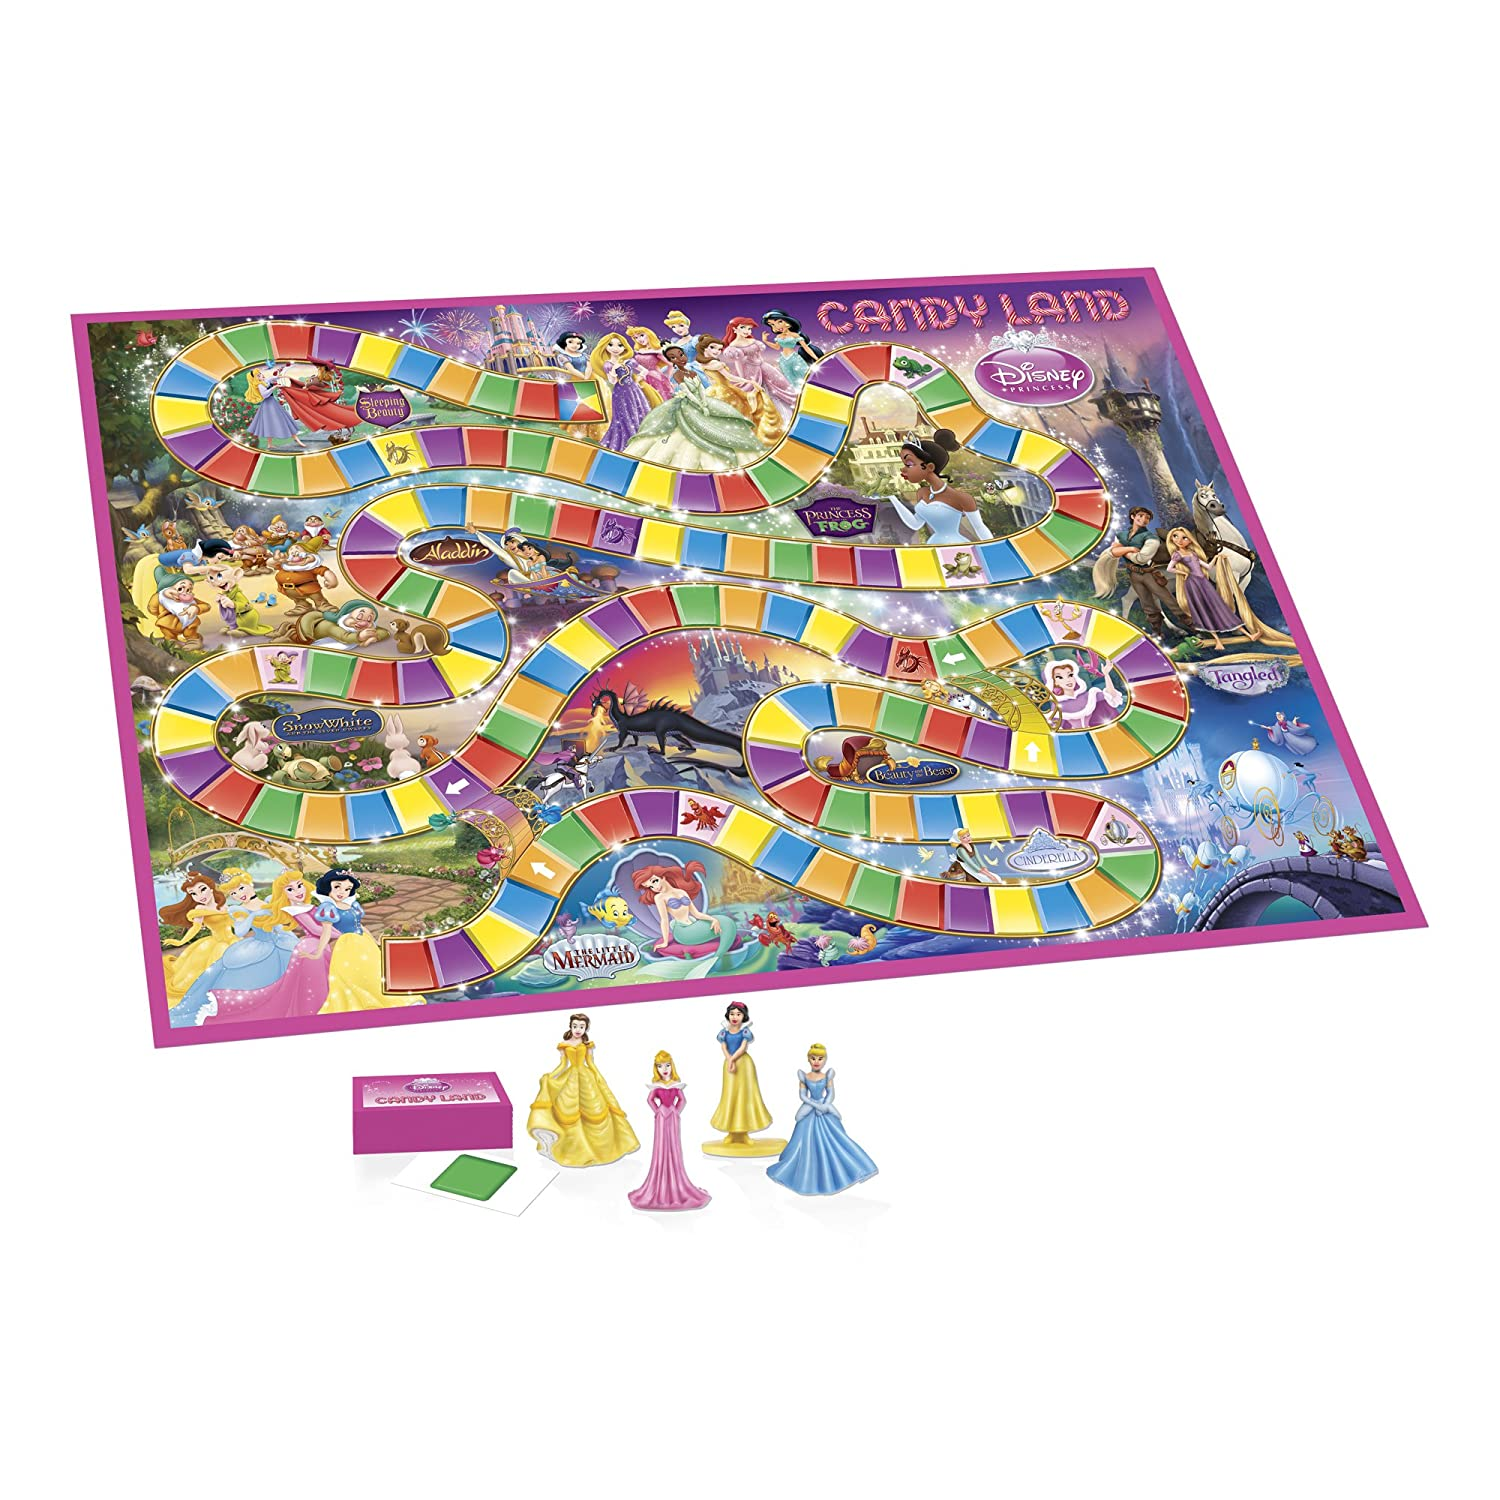 Candy Land Game Disney Princess Edition Amazon Exclusive